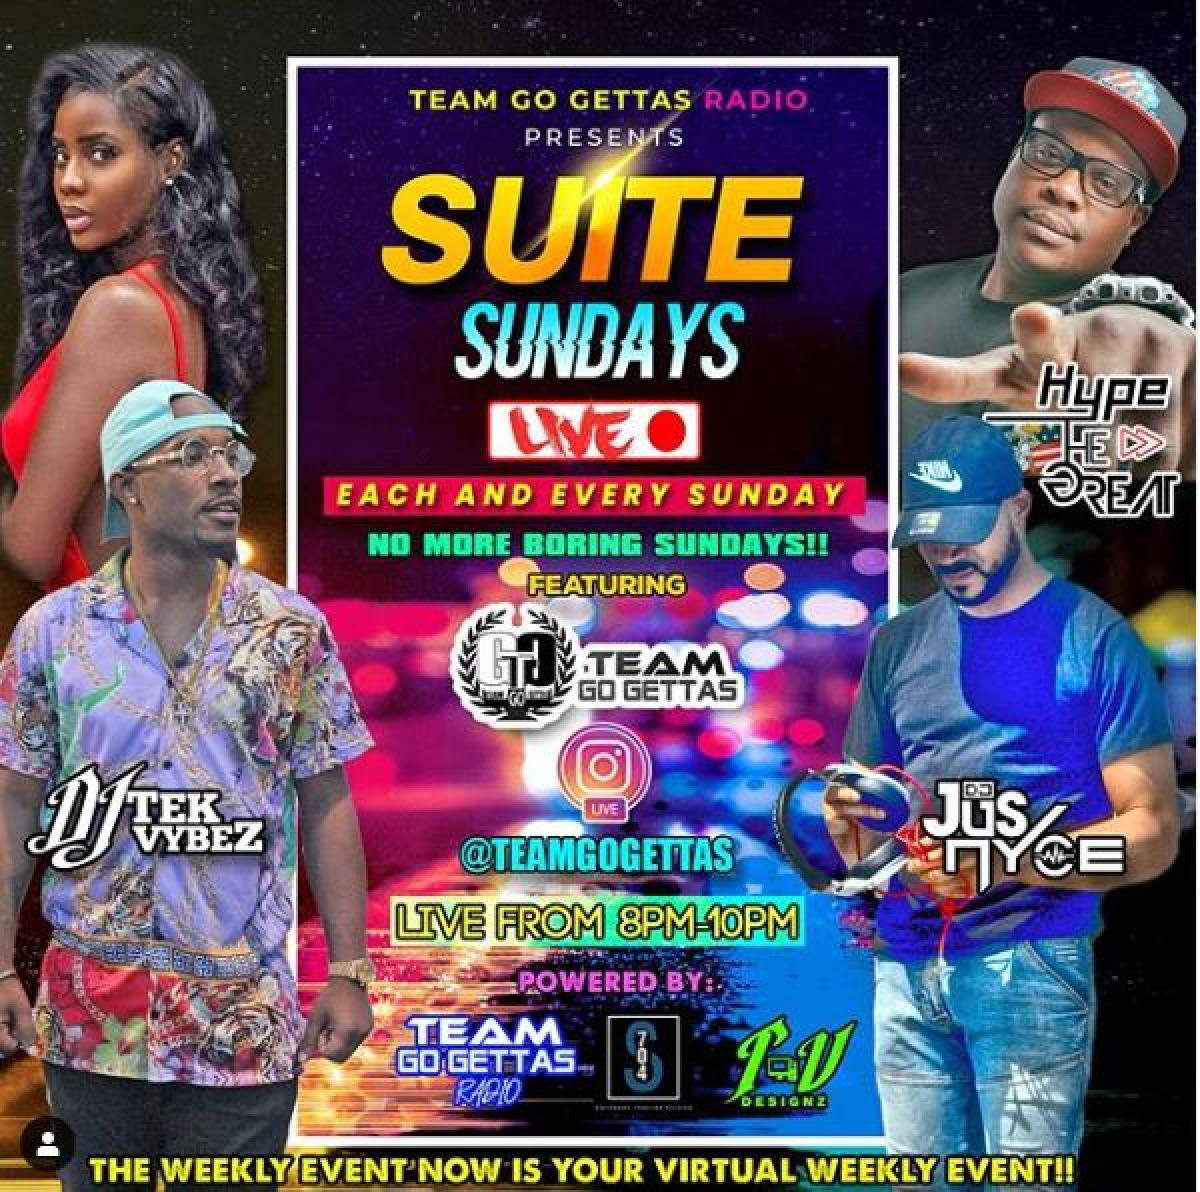 Suite Sundays flyer or graphic.